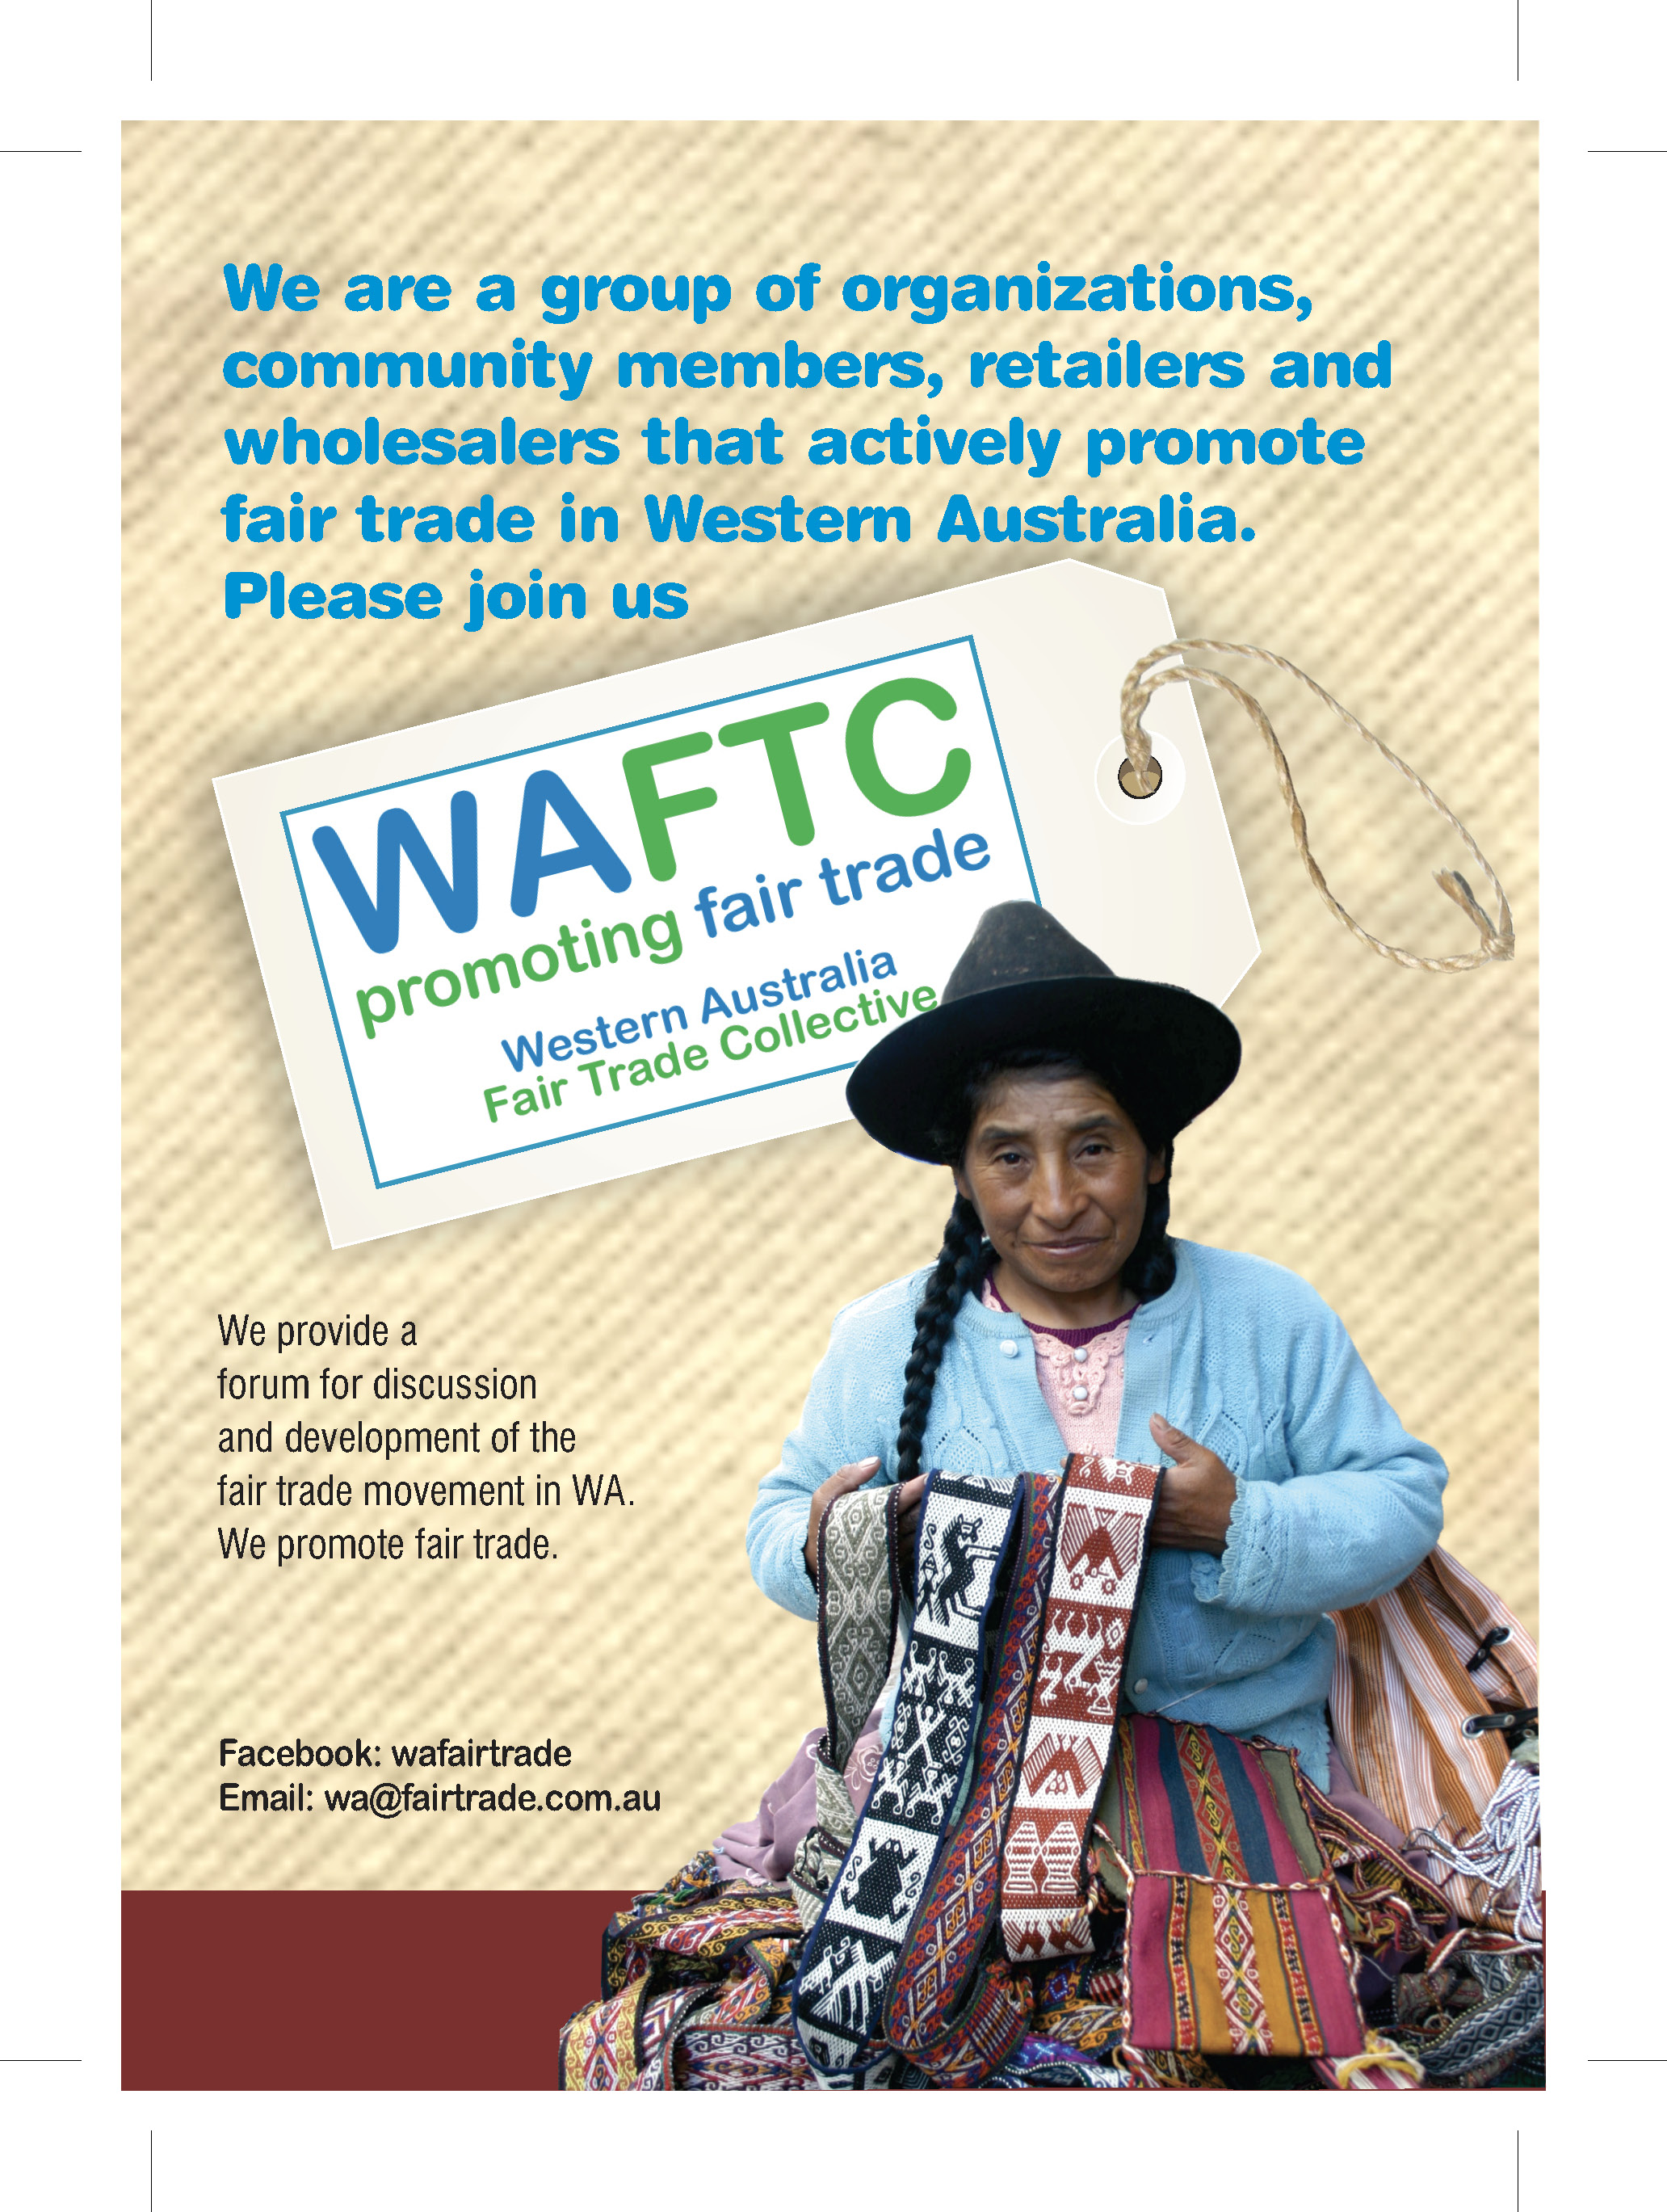 wa_fair_trade_people_ad2012.jpg